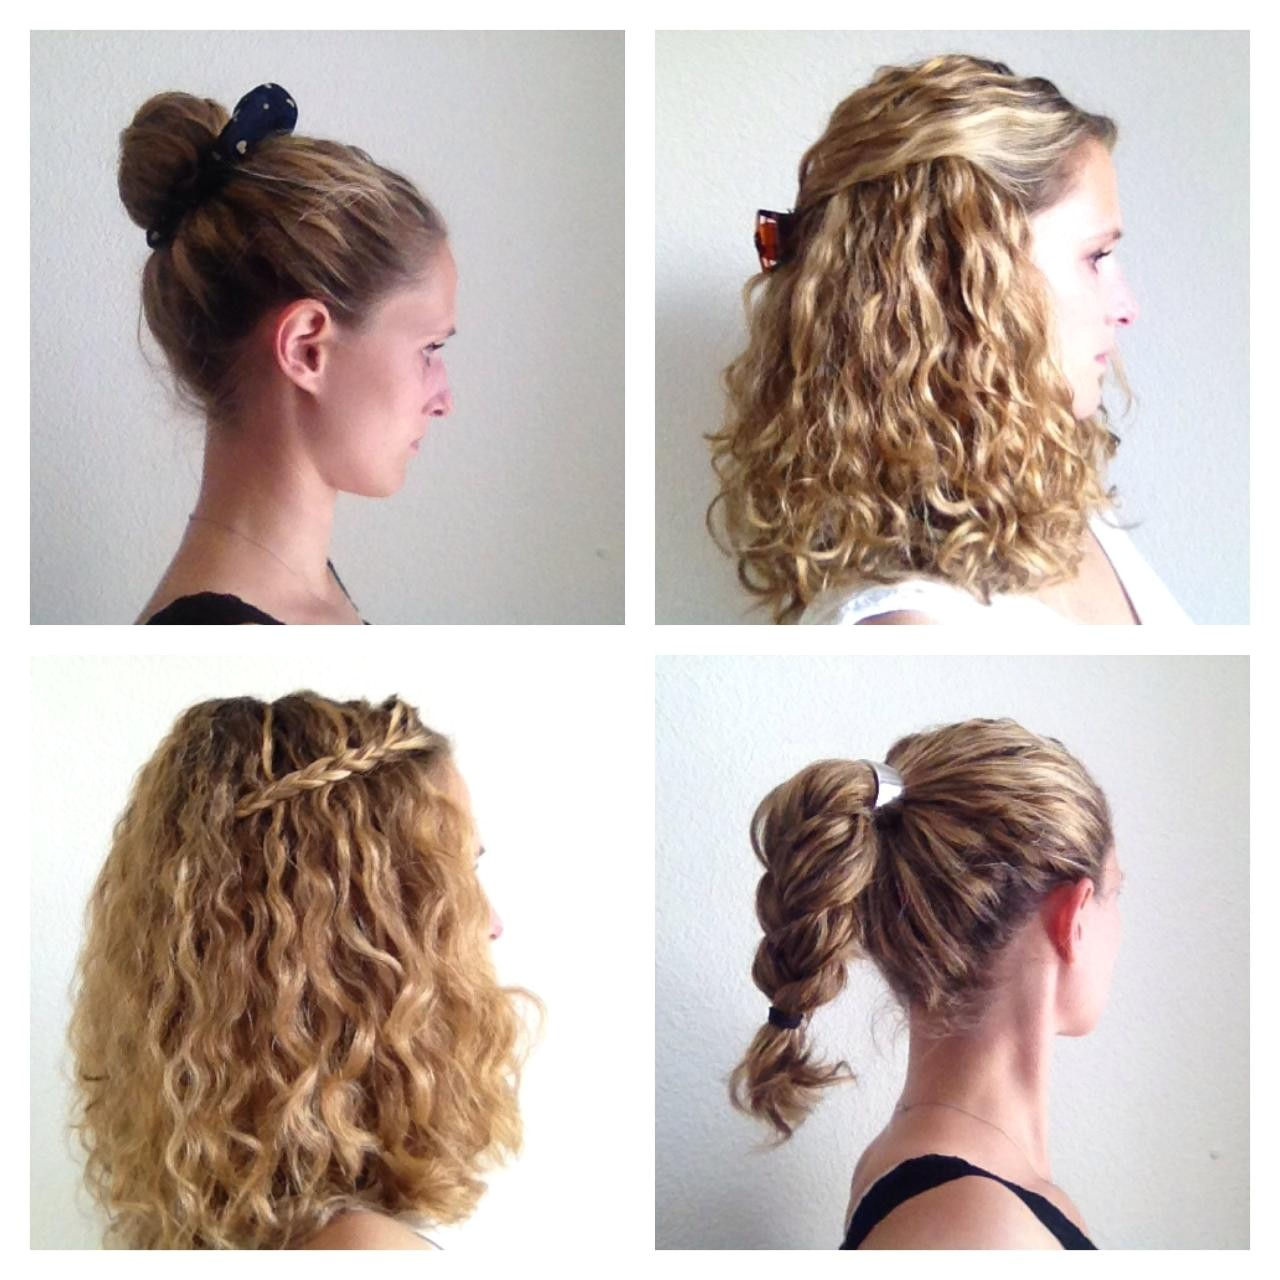 diy easy simple hairstyles without heat